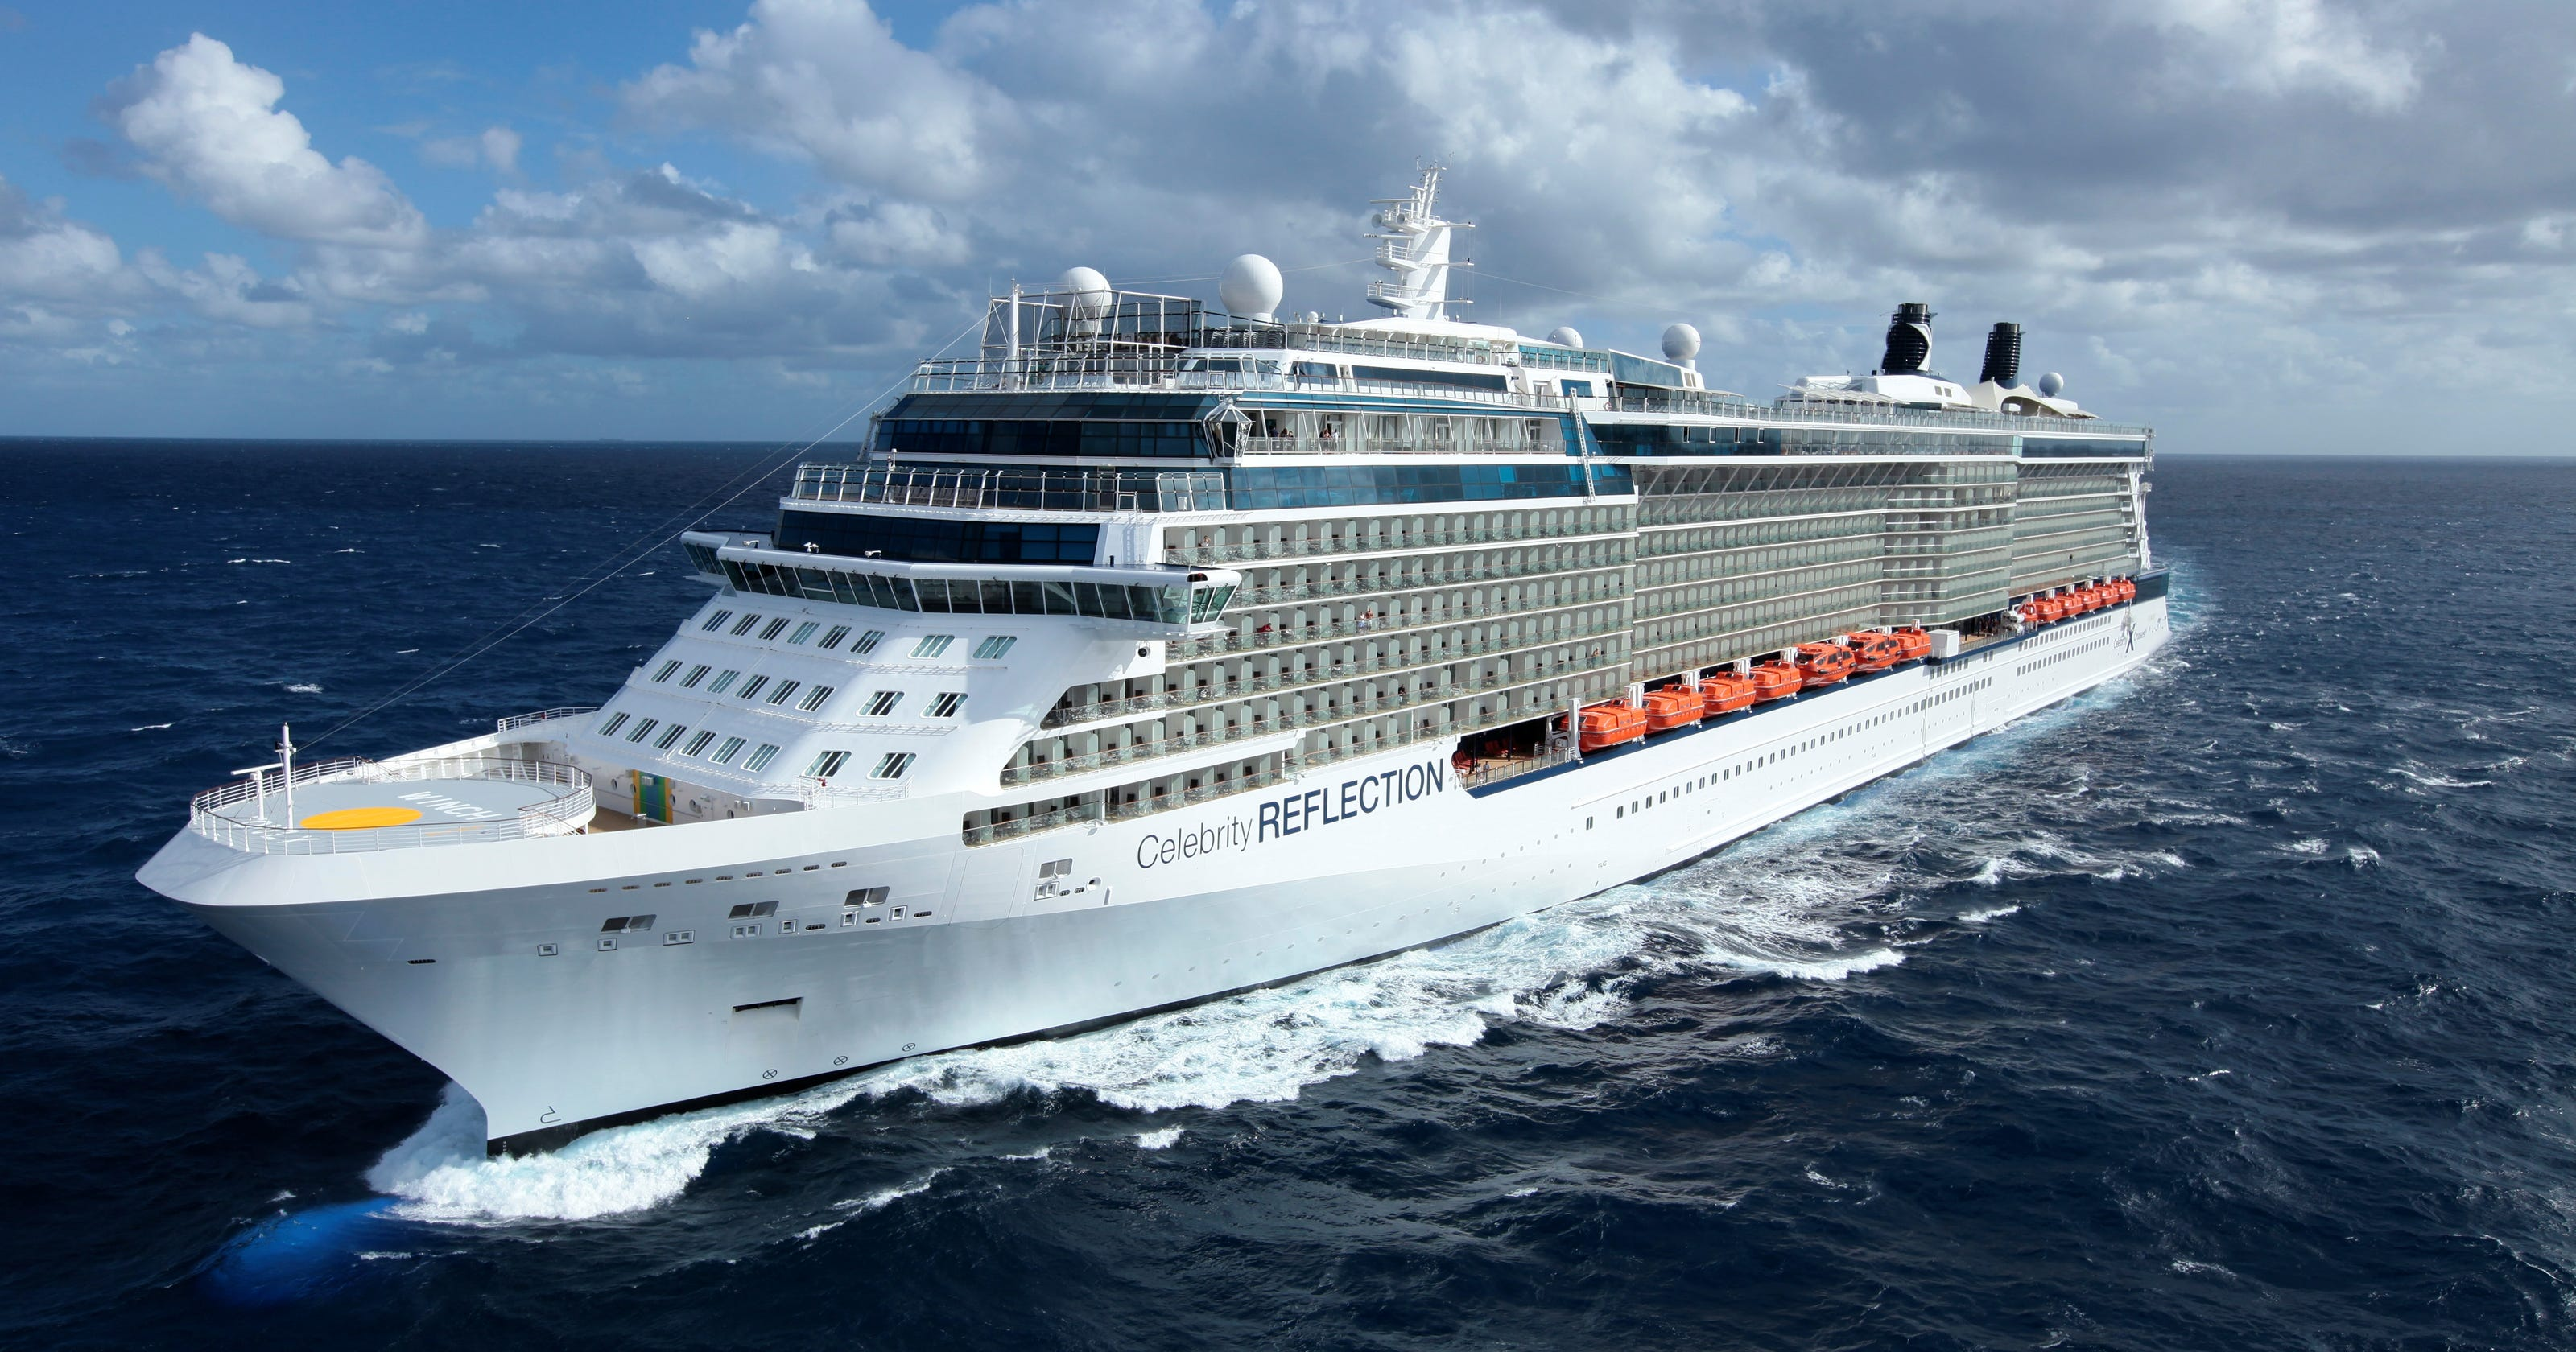 Celebrity Cruises: All Ships and Ratings